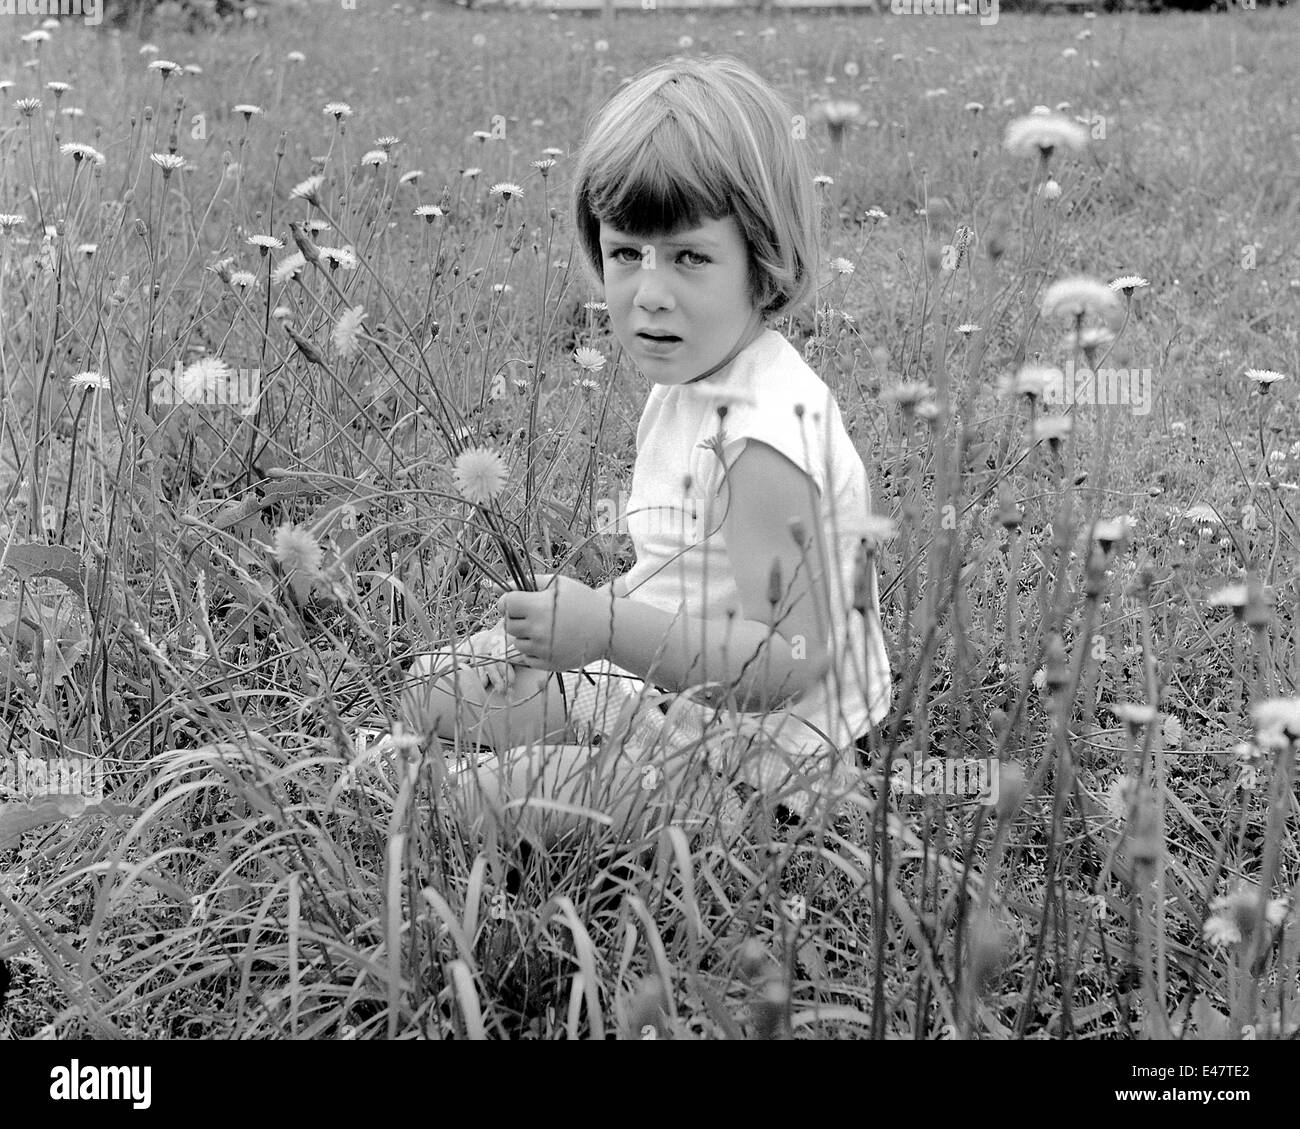 Young Girl Sitting In A Field Of Dandelions Picking Flowers